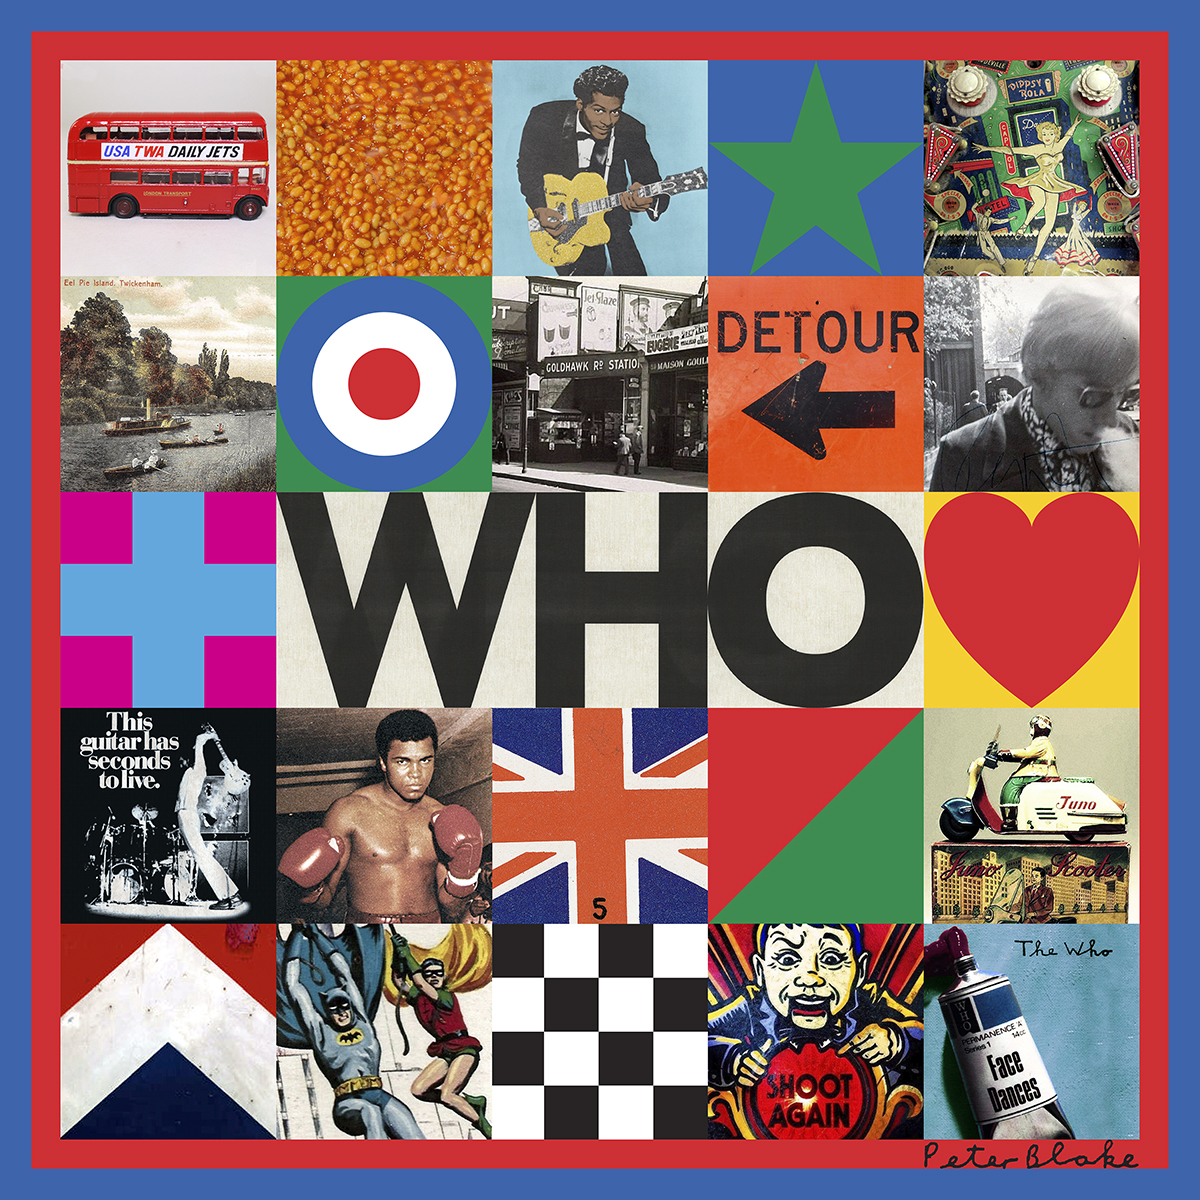 Legendary Rock Band The Who To Release Their First New Album In Thirteen Years,Who,OnDecember 6